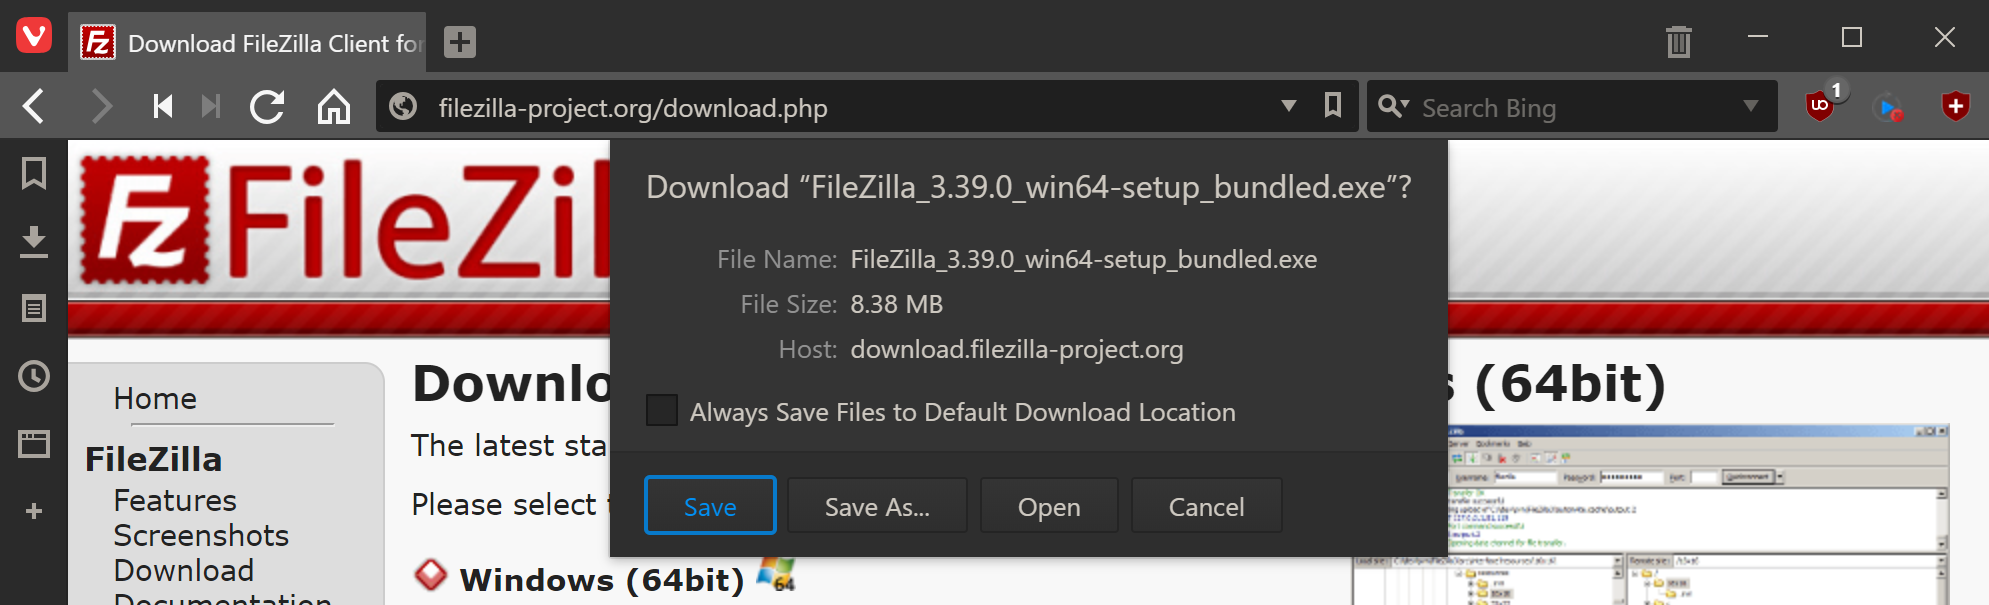 Save or open downloaded file